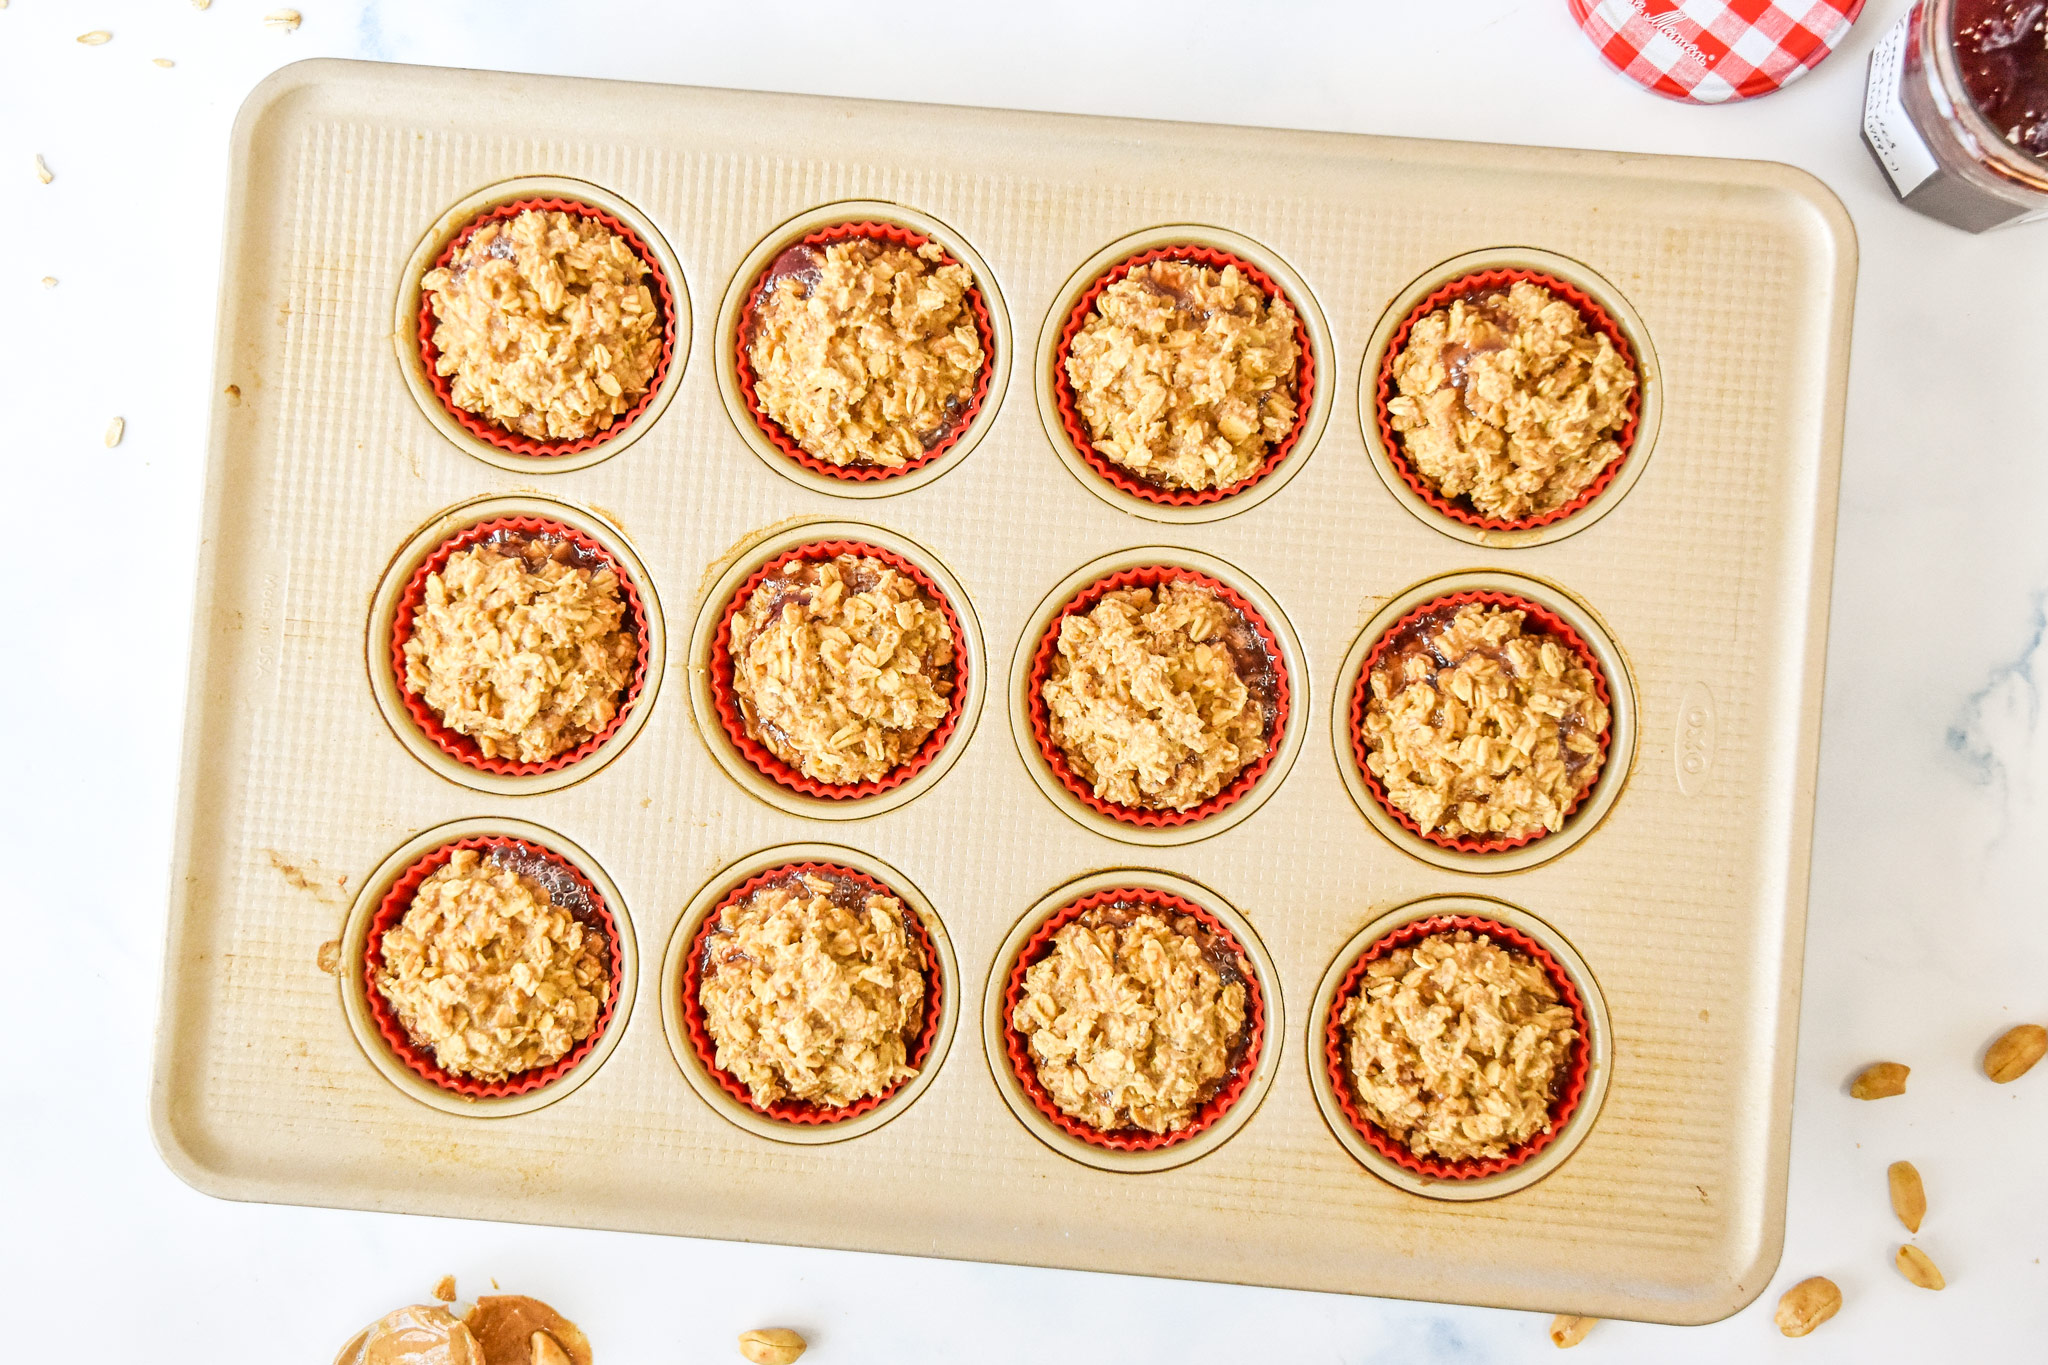 peanut butter & jelly baked oatmeal cups fresh from the oven.